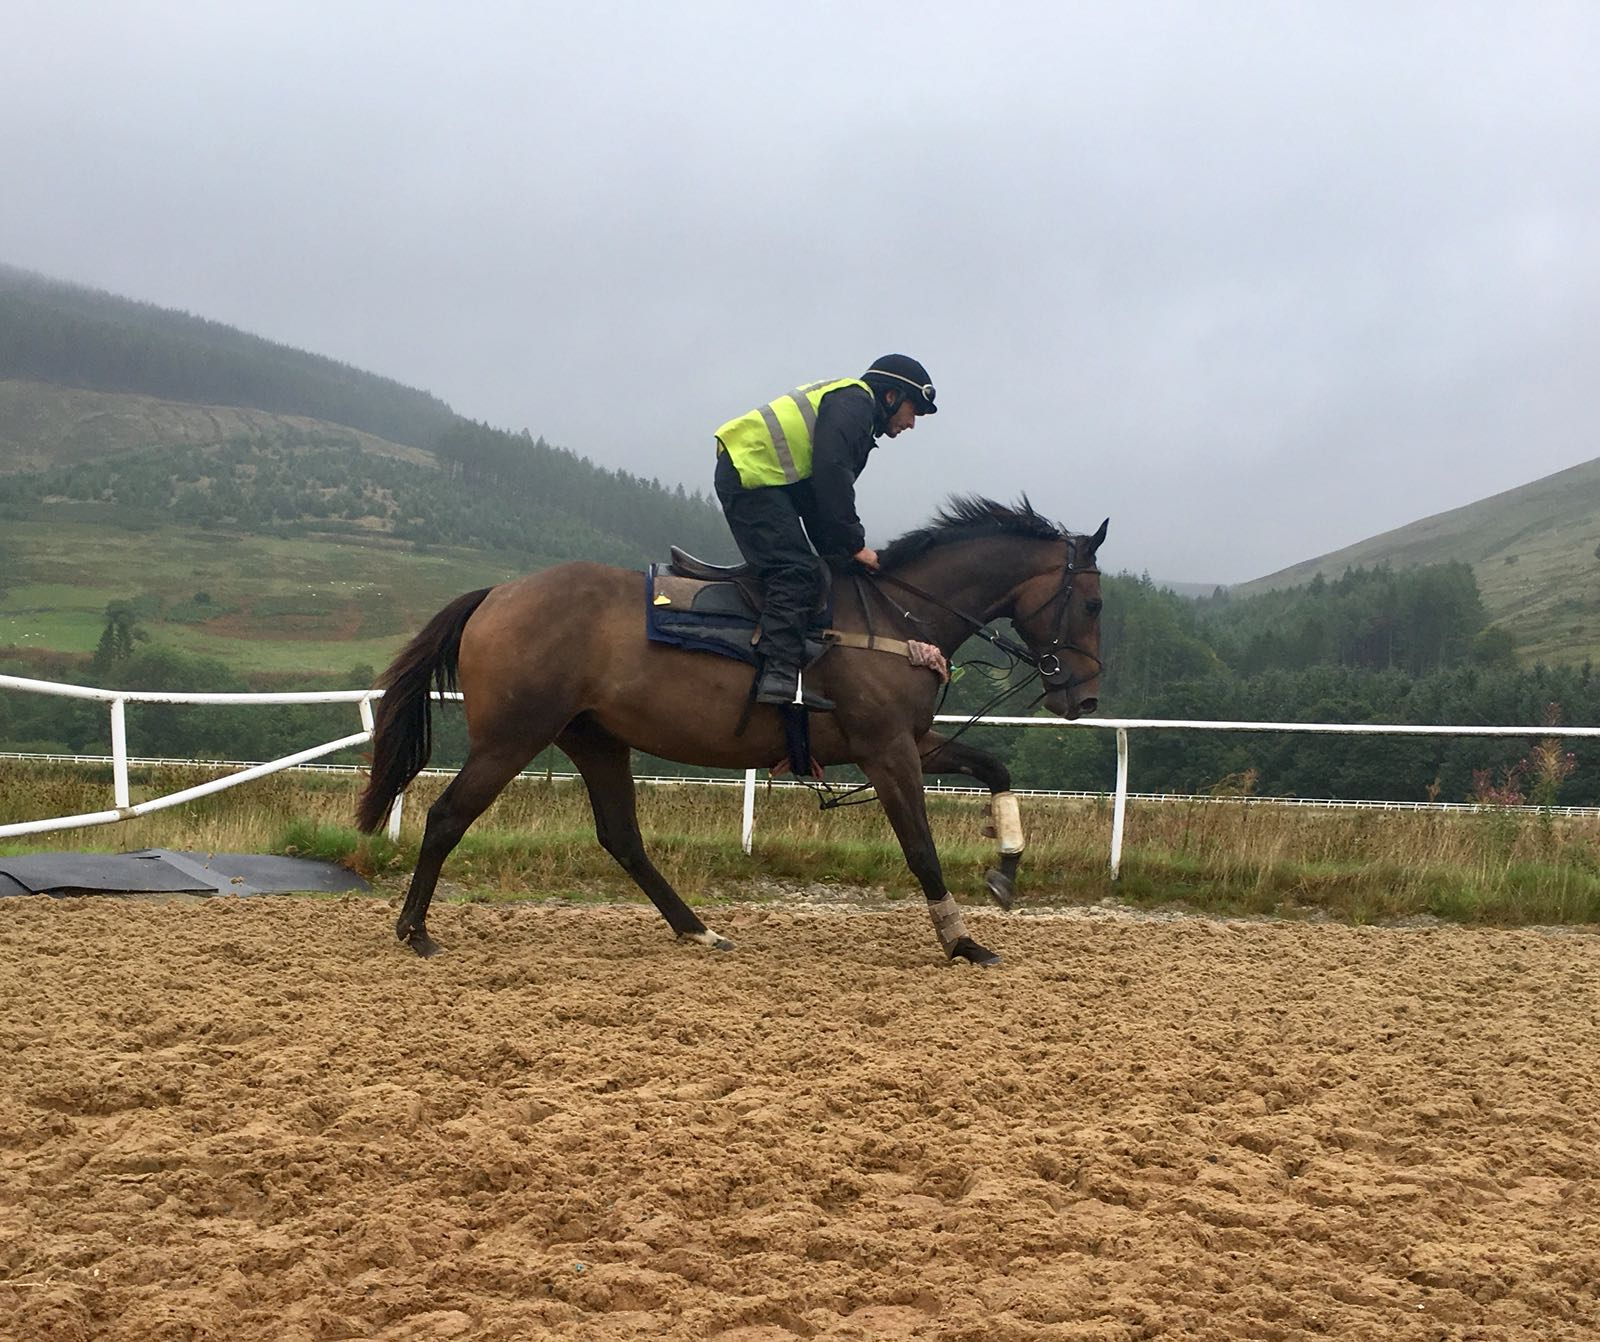 Ground control cantering august